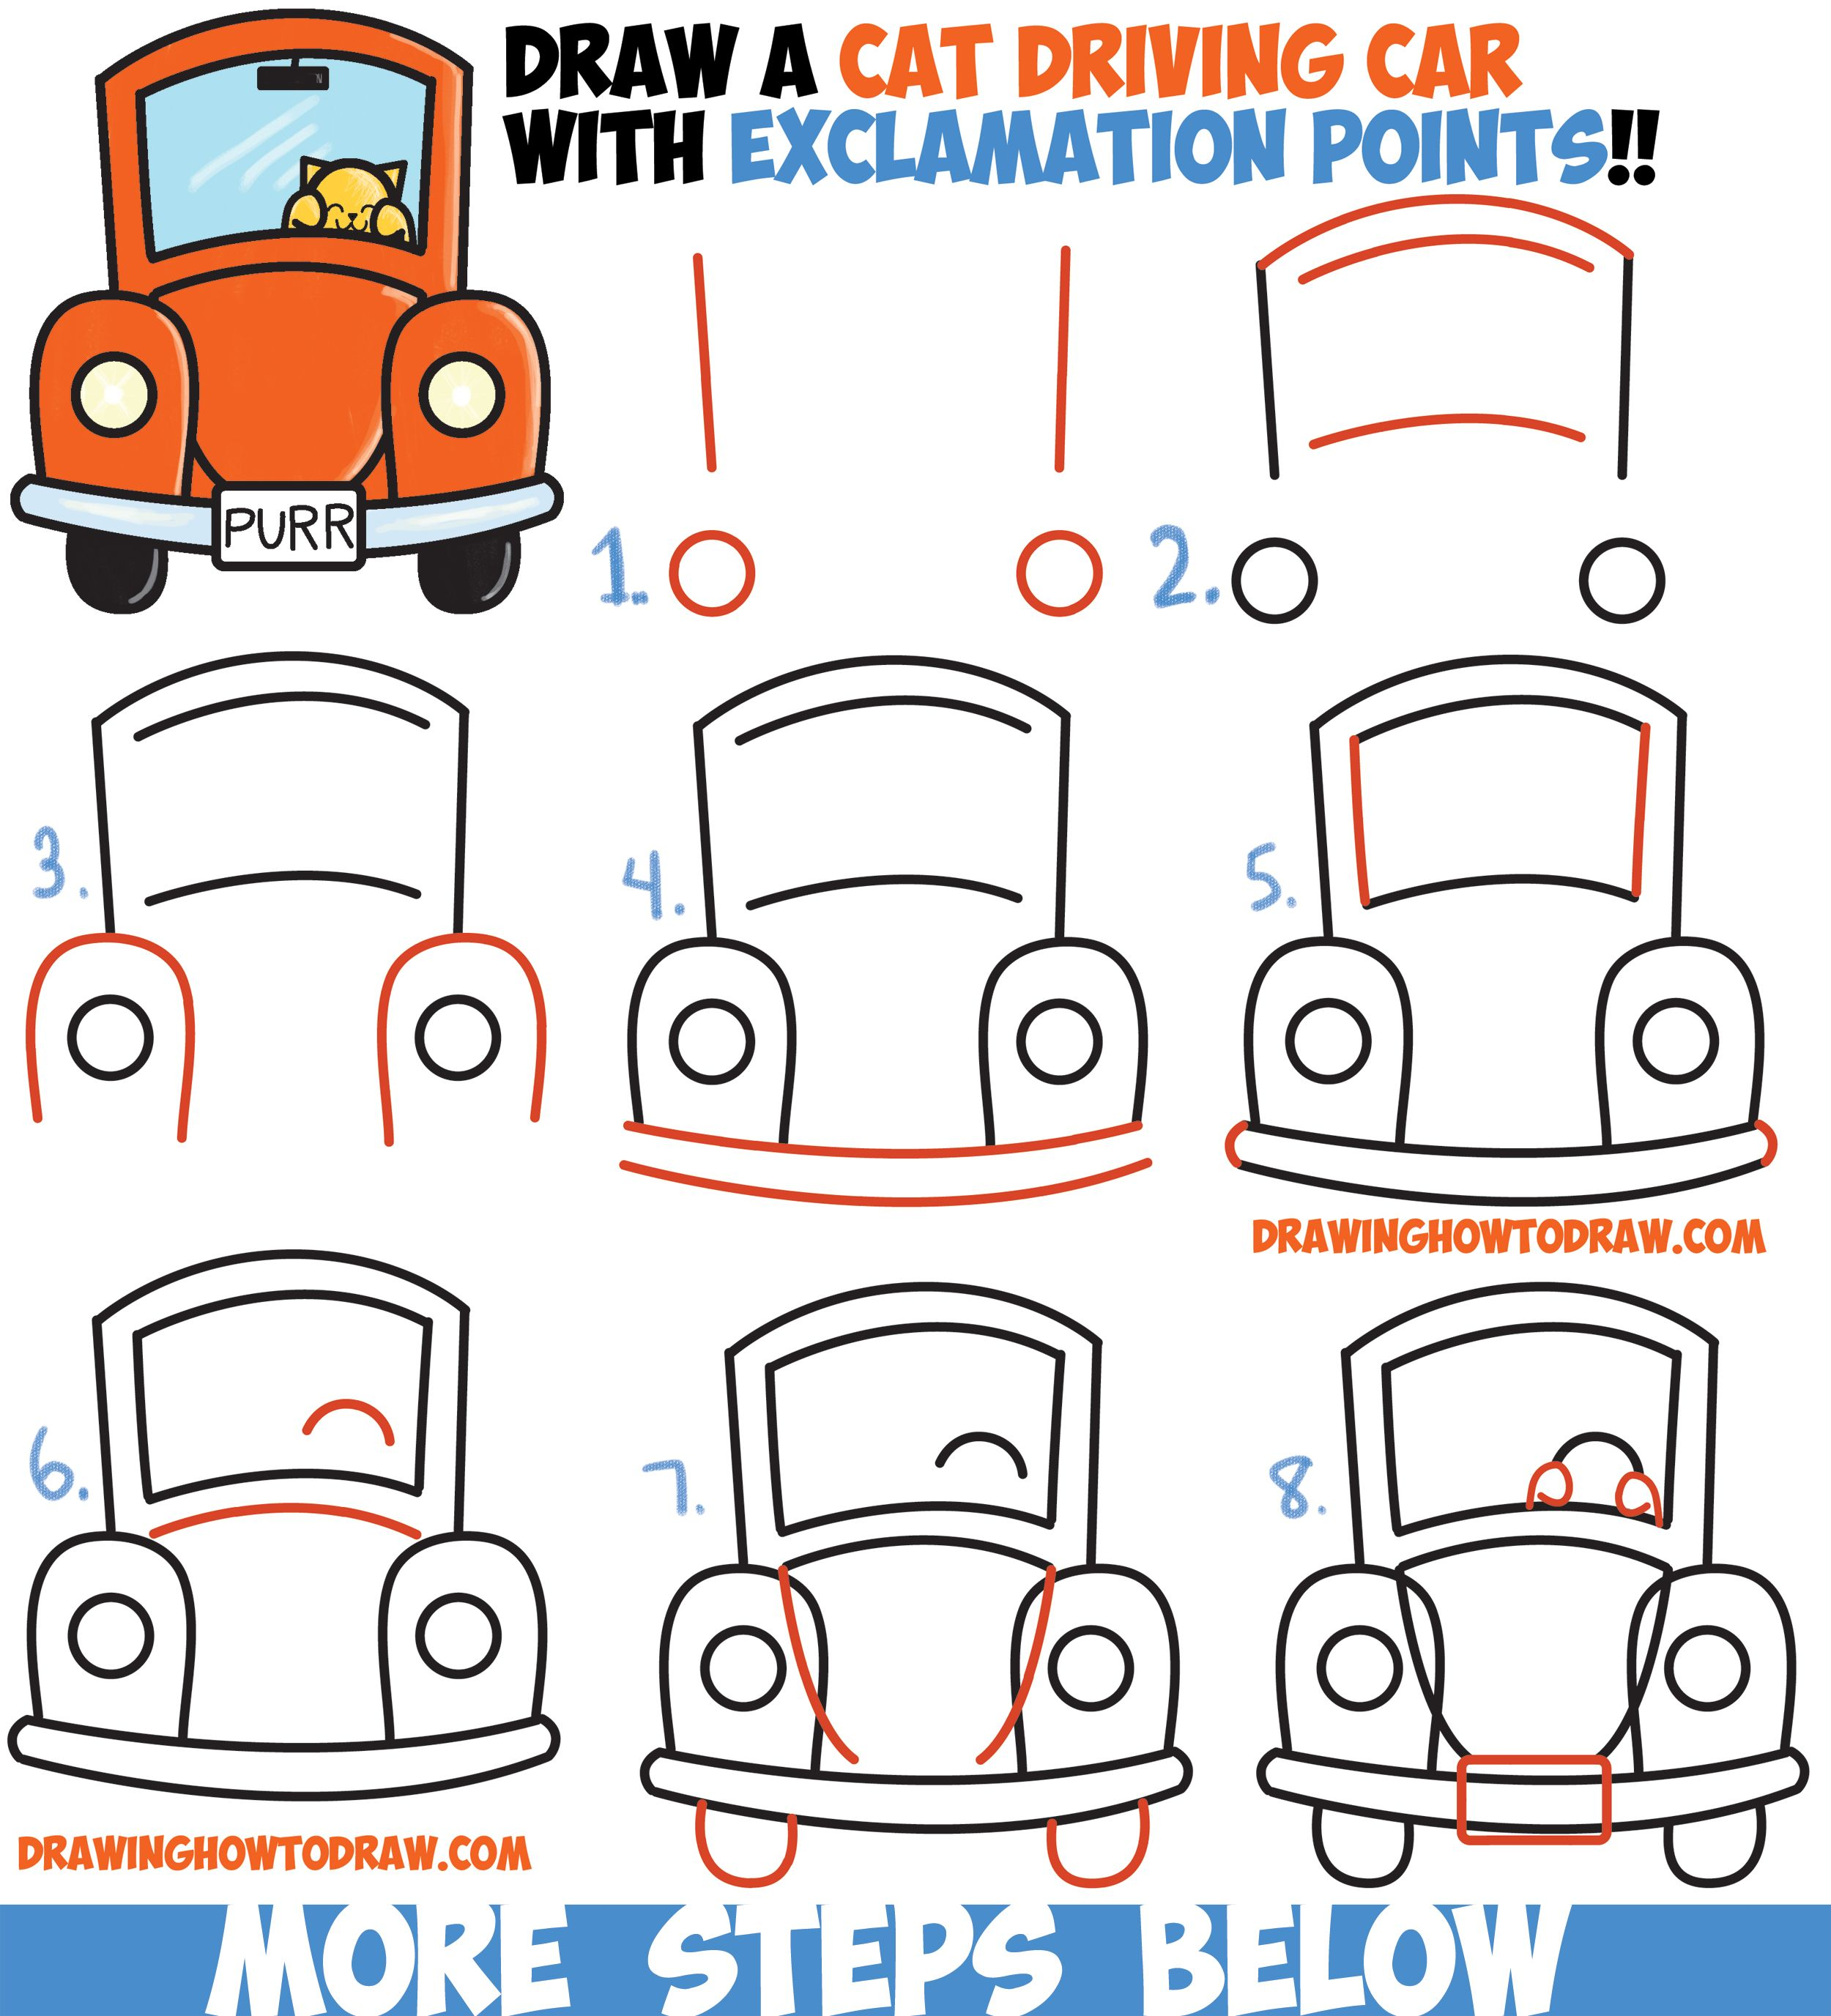 How To Draw Cute Cartoon Cat Driving A Car From